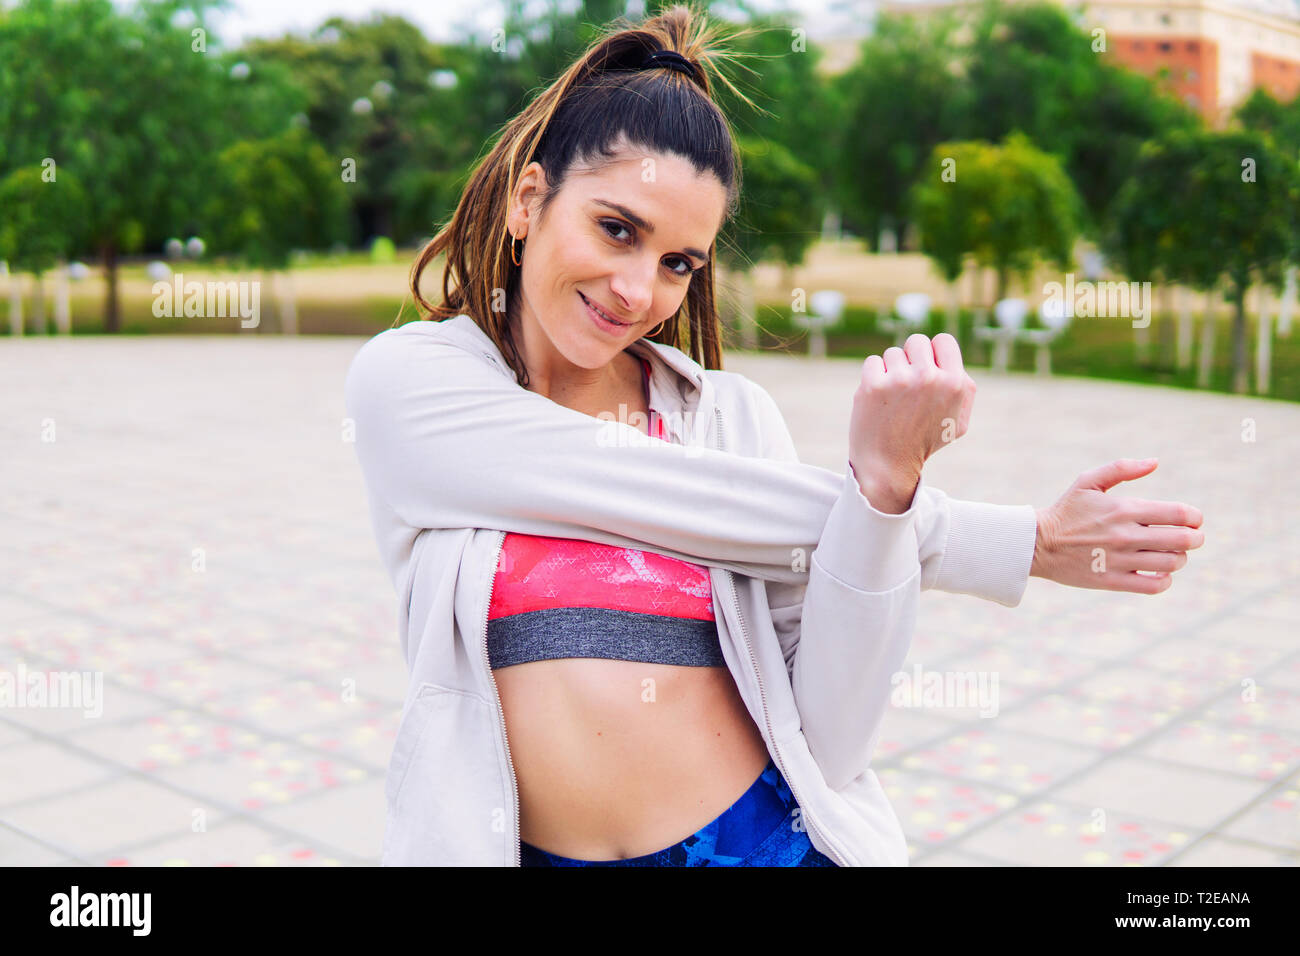 Runner fit woman warming up before sport training in the park. Stock Photo